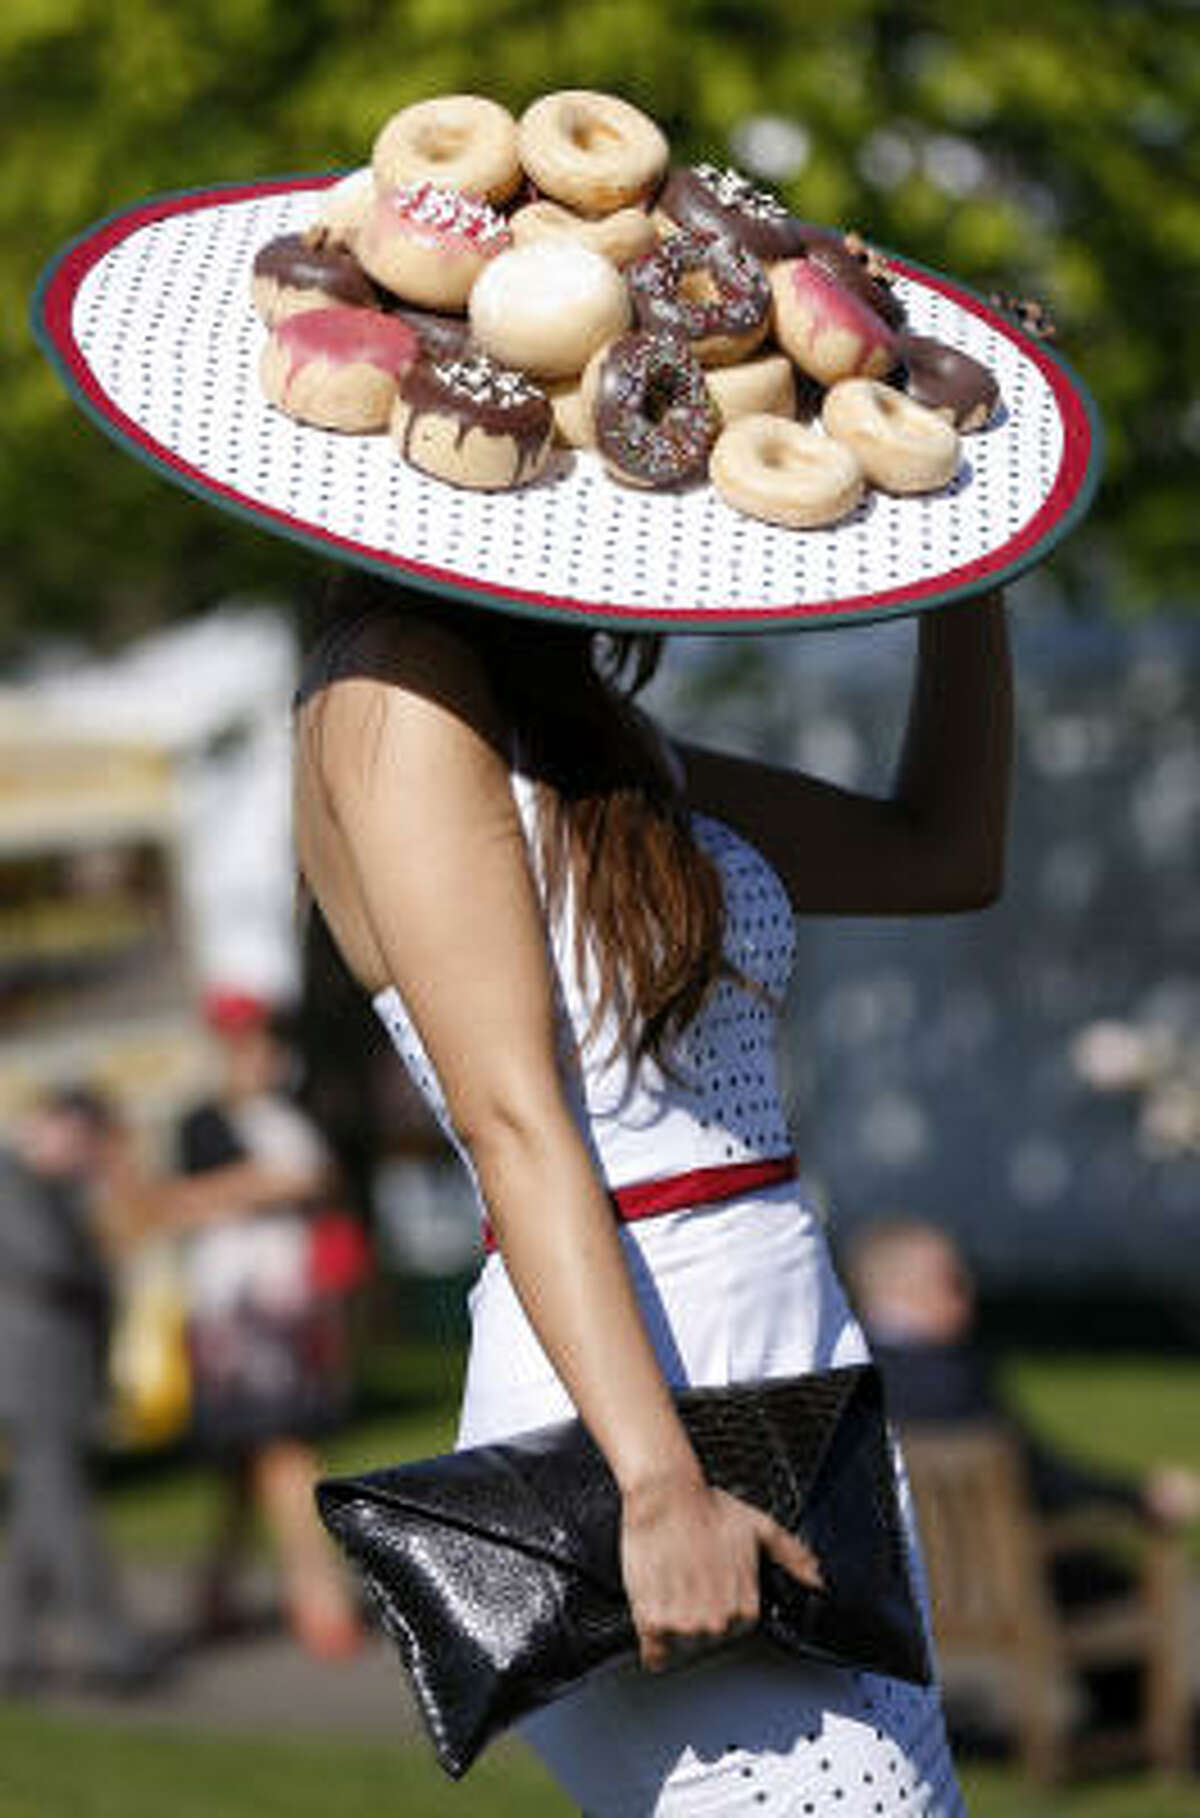 Britain's love of hats has always been in a different league with its bowlers, baker boys, top hats, boaters, deerstalkers and countless ladies creations worn by royals and commoners alike through the centuries, a beloved tradition that will be in full-force at Prince William and Kate Middleton's wedding.